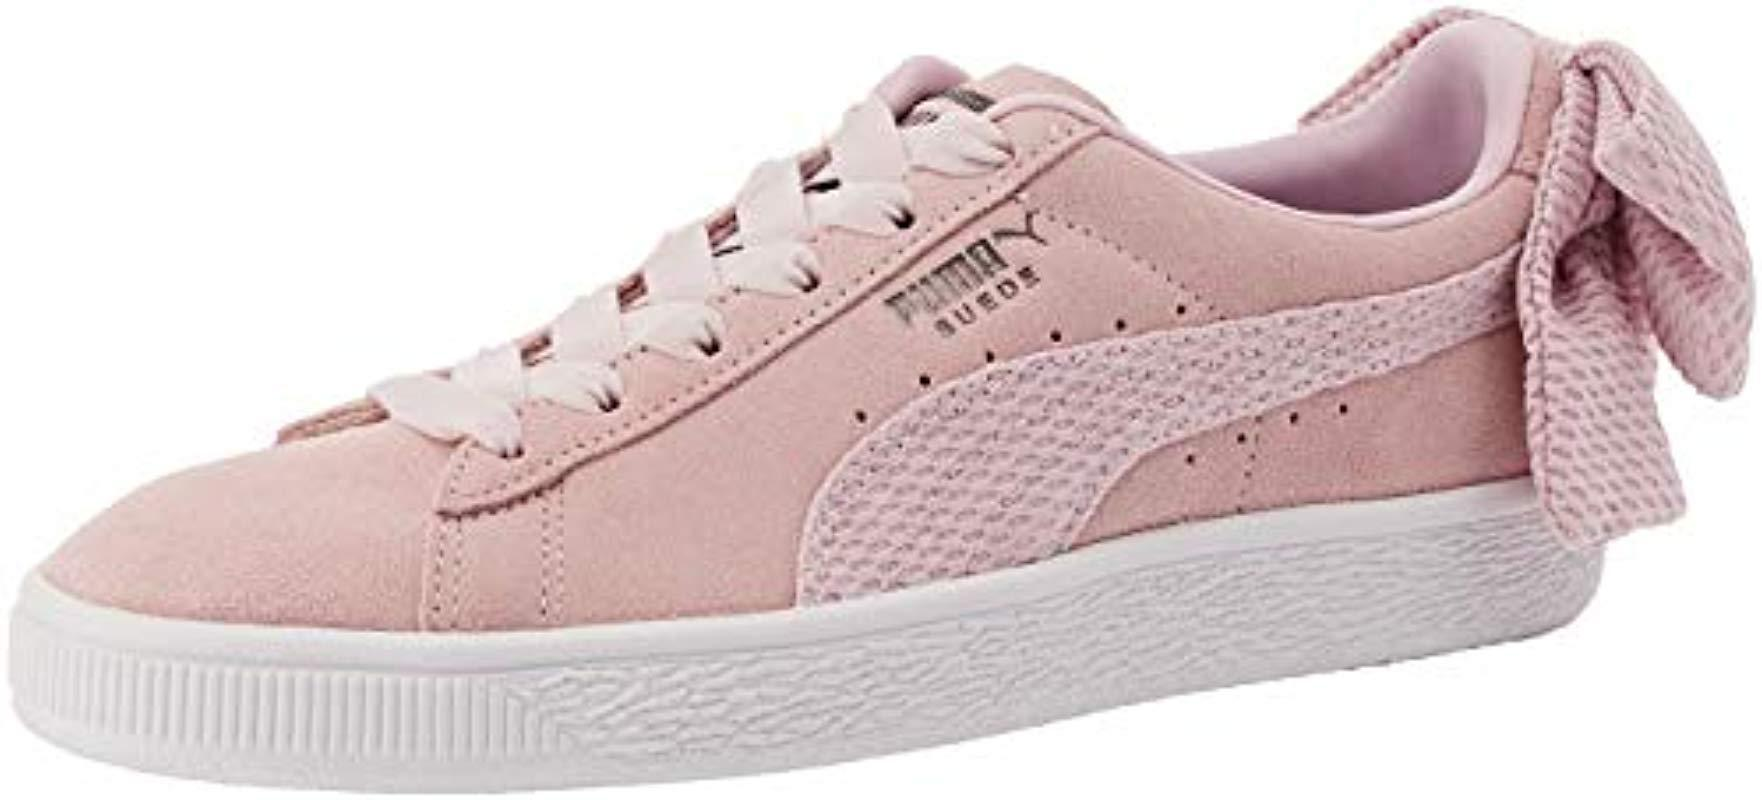 Puma   s Suede Bow Uprising Wn s Low-top Sneakers - Lyst 9f7b65cb8